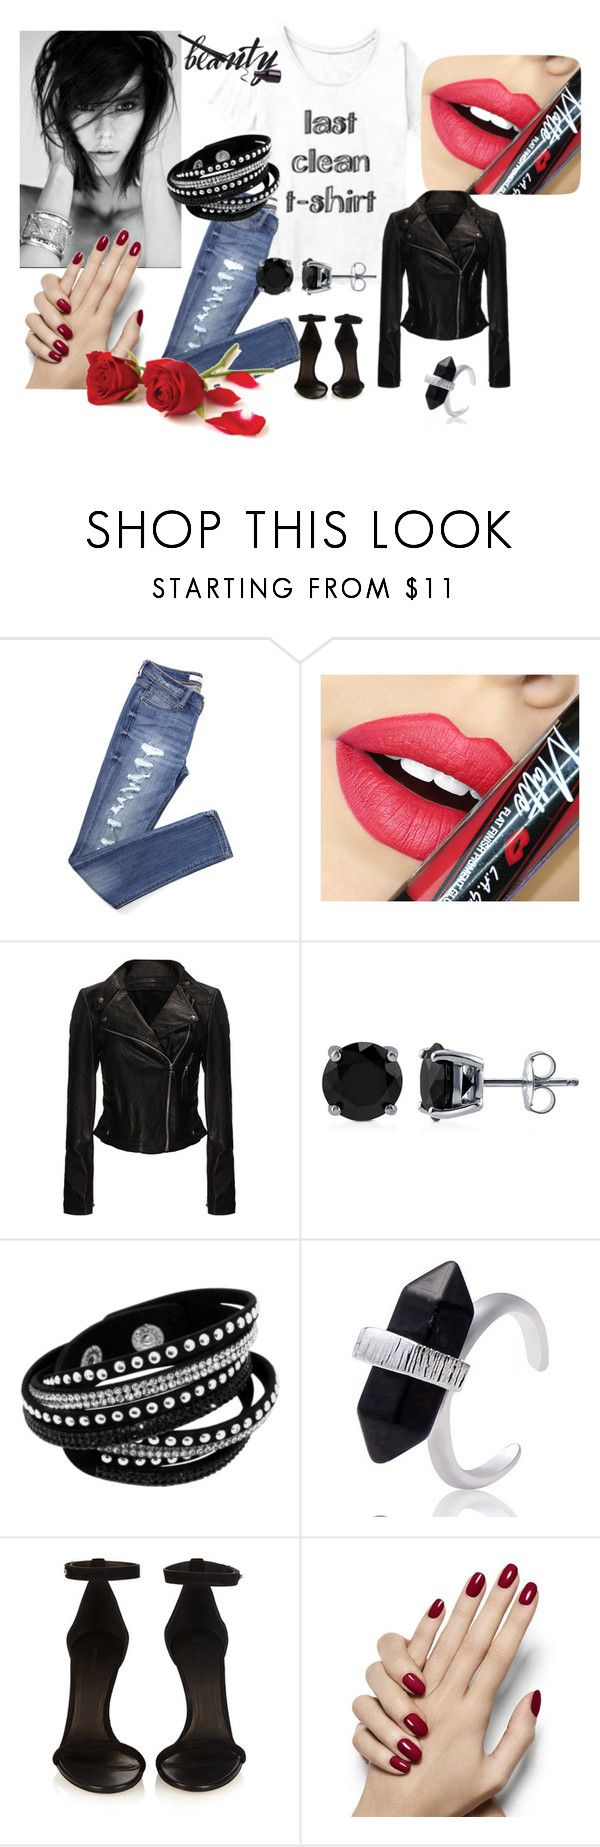 evening out by sdkx on Polyvore featuring Isabel Marant, BERRICLE, Fiebiger, women's clothing, women's fashion, women, female, woman, misses and juniors